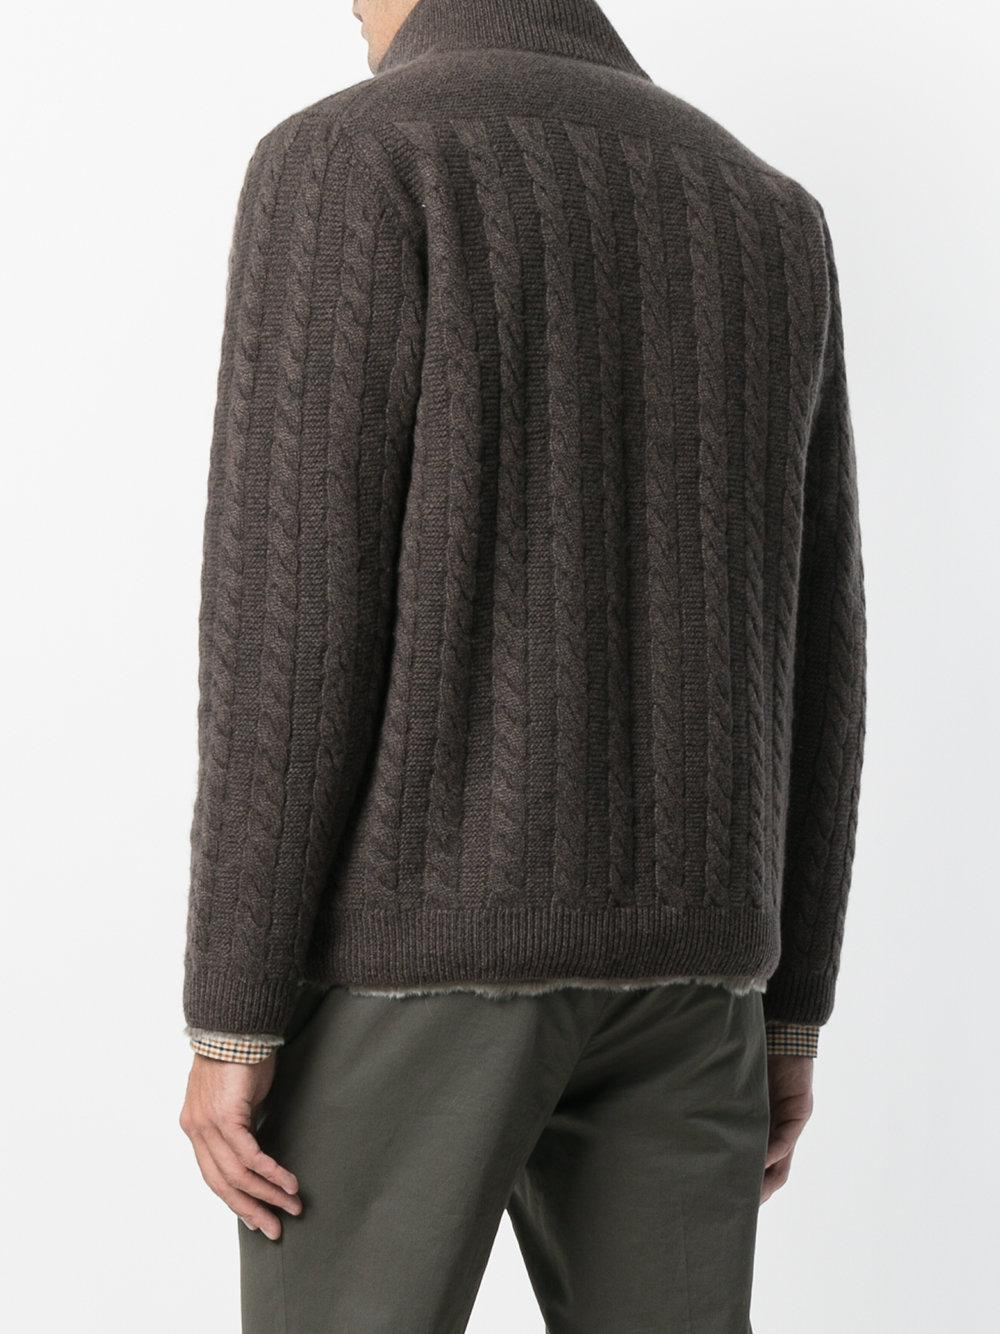 hindu single men in cashmere Find great deals on ebay for indian shawl men polo ralph lauren men cashmere wool knit shawl indian sweater navy medium traditional indian shawl for men.